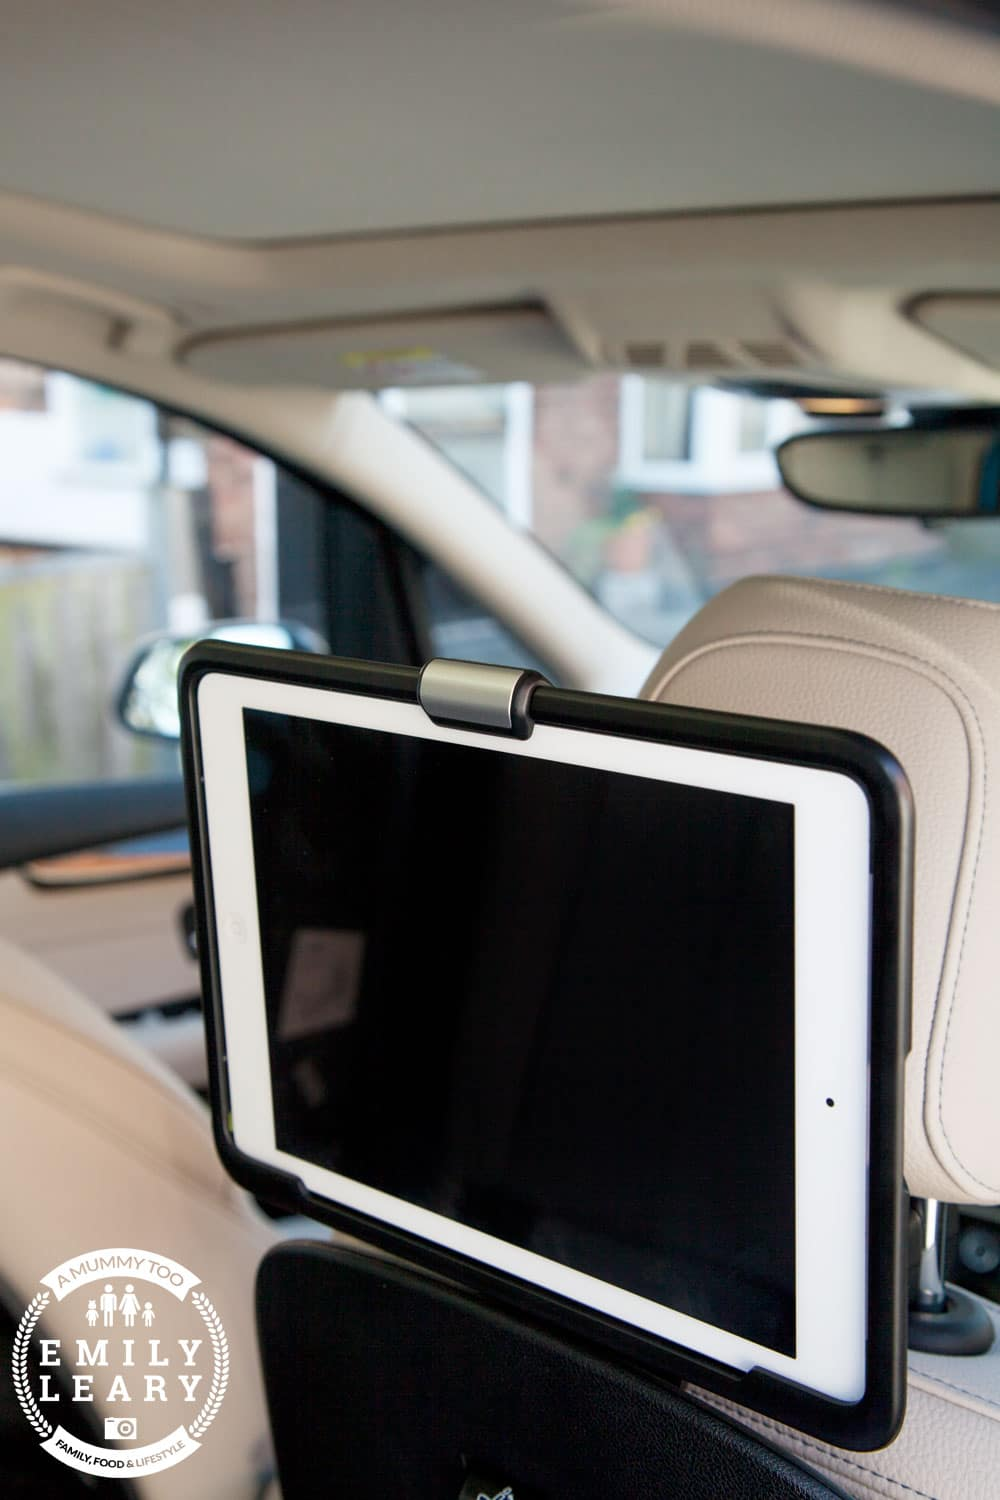 BMW-inside-iPad-web